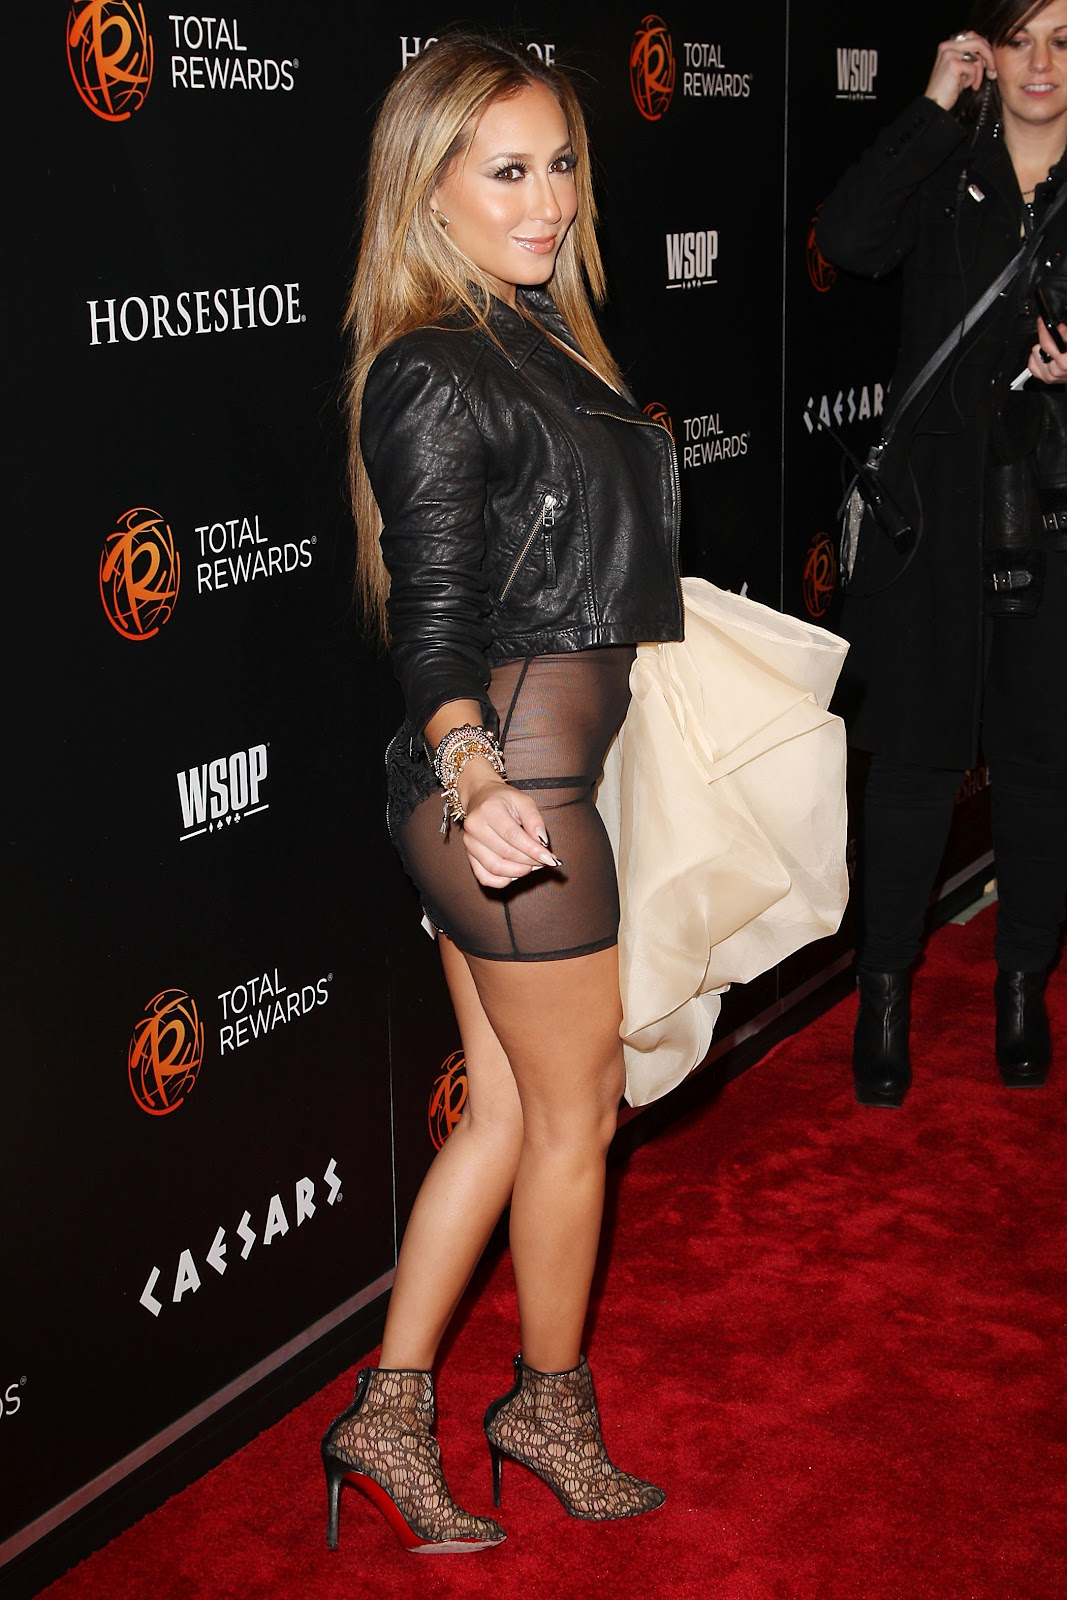 http://3.bp.blogspot.com/-JN8GIuhxcho/T1sBLJNwE4I/AAAAAAAAEOw/F30U8YAzvfI/s1600/Adrienne+Bailon+Flashing+The+See-Through+Dress+Pantyless+Pussy+www.GutterUncensored.com+006.JPG